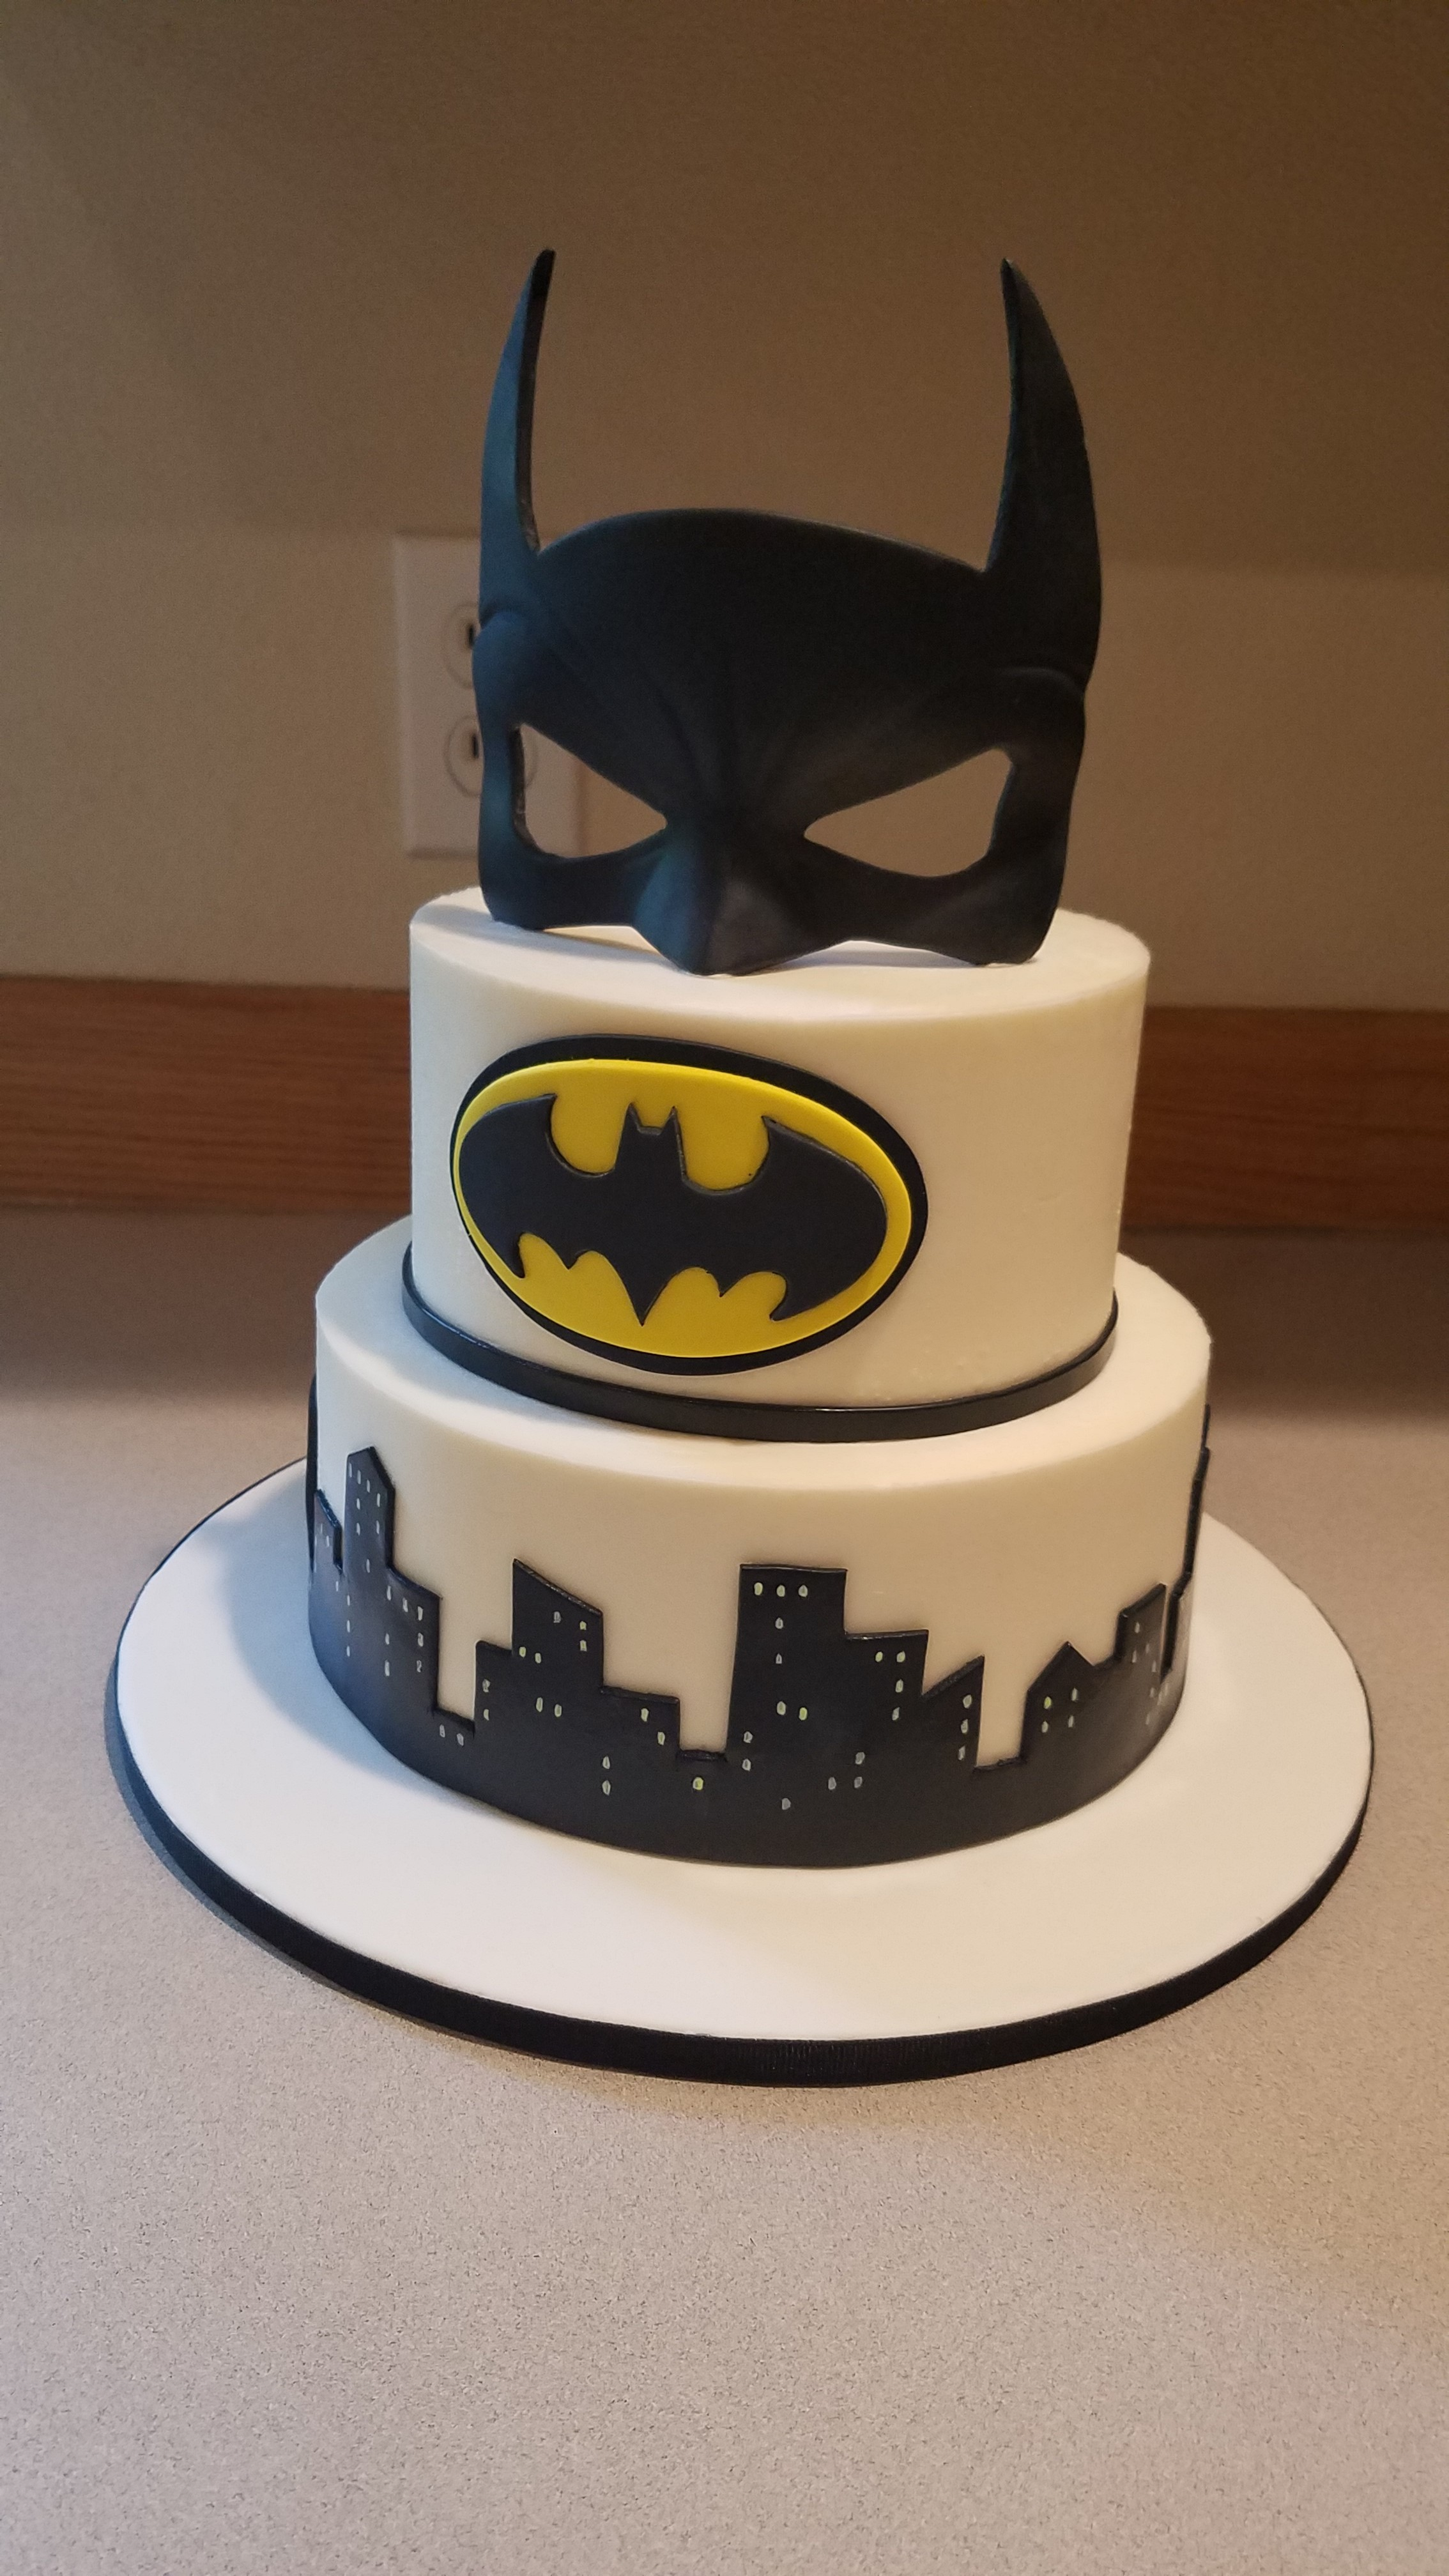 Simple Batman cake with edible mask